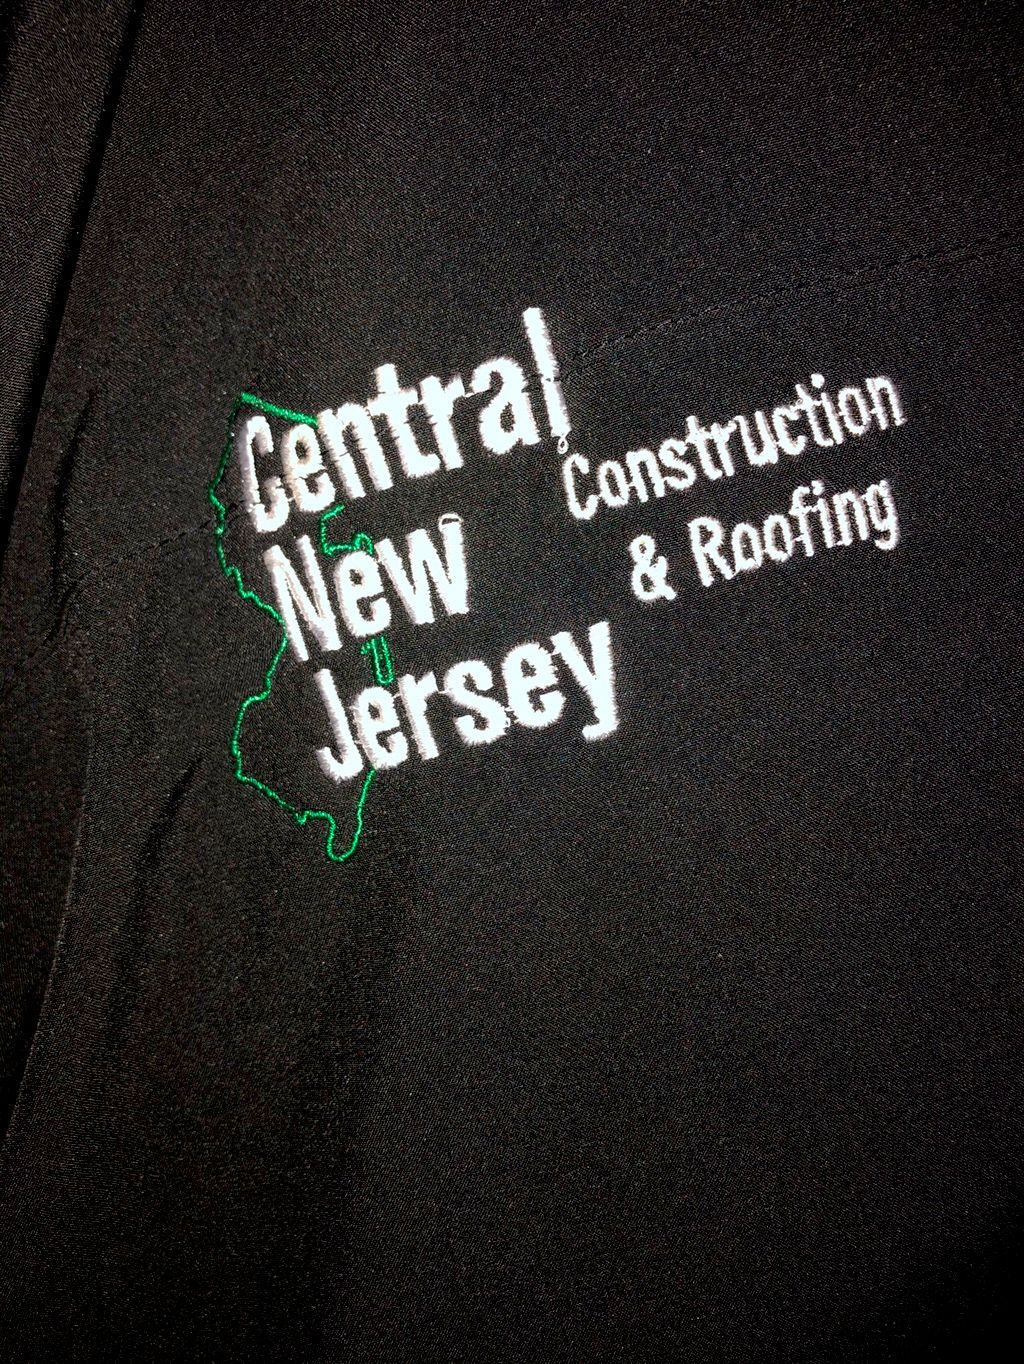 CNJ CONSTRUCTION AND ROOFING